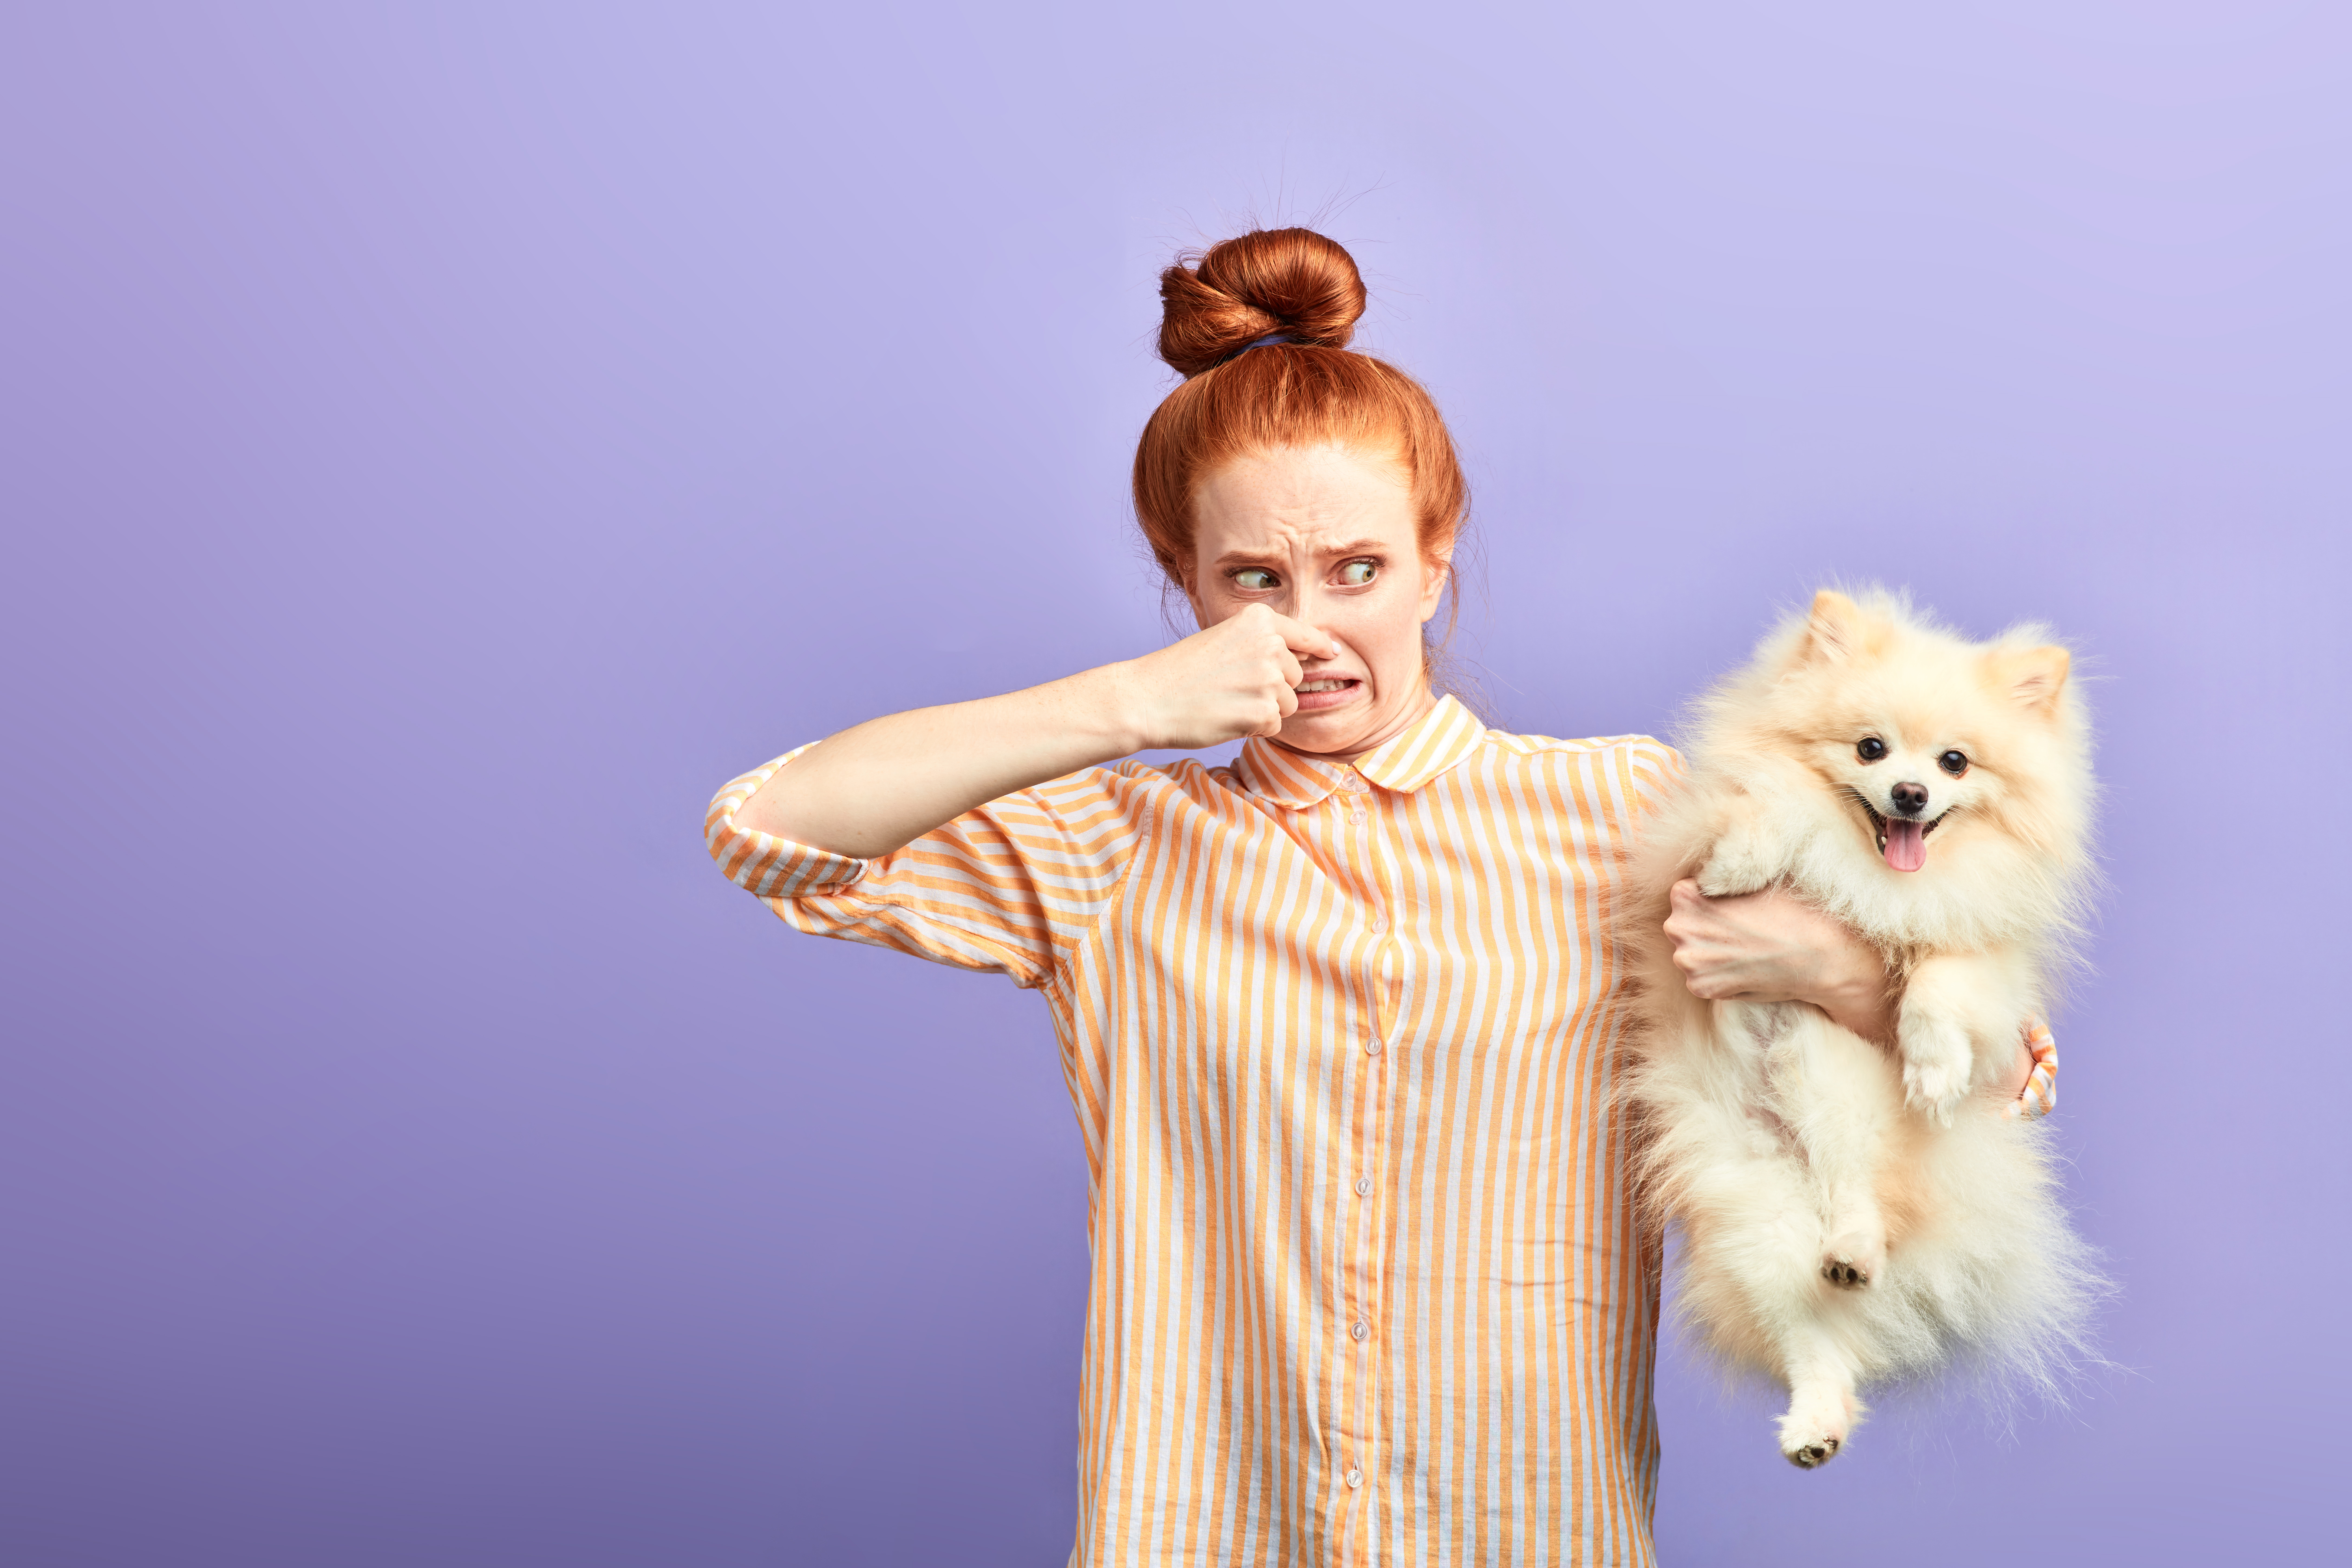 angry frustrated girl holding stinky dog